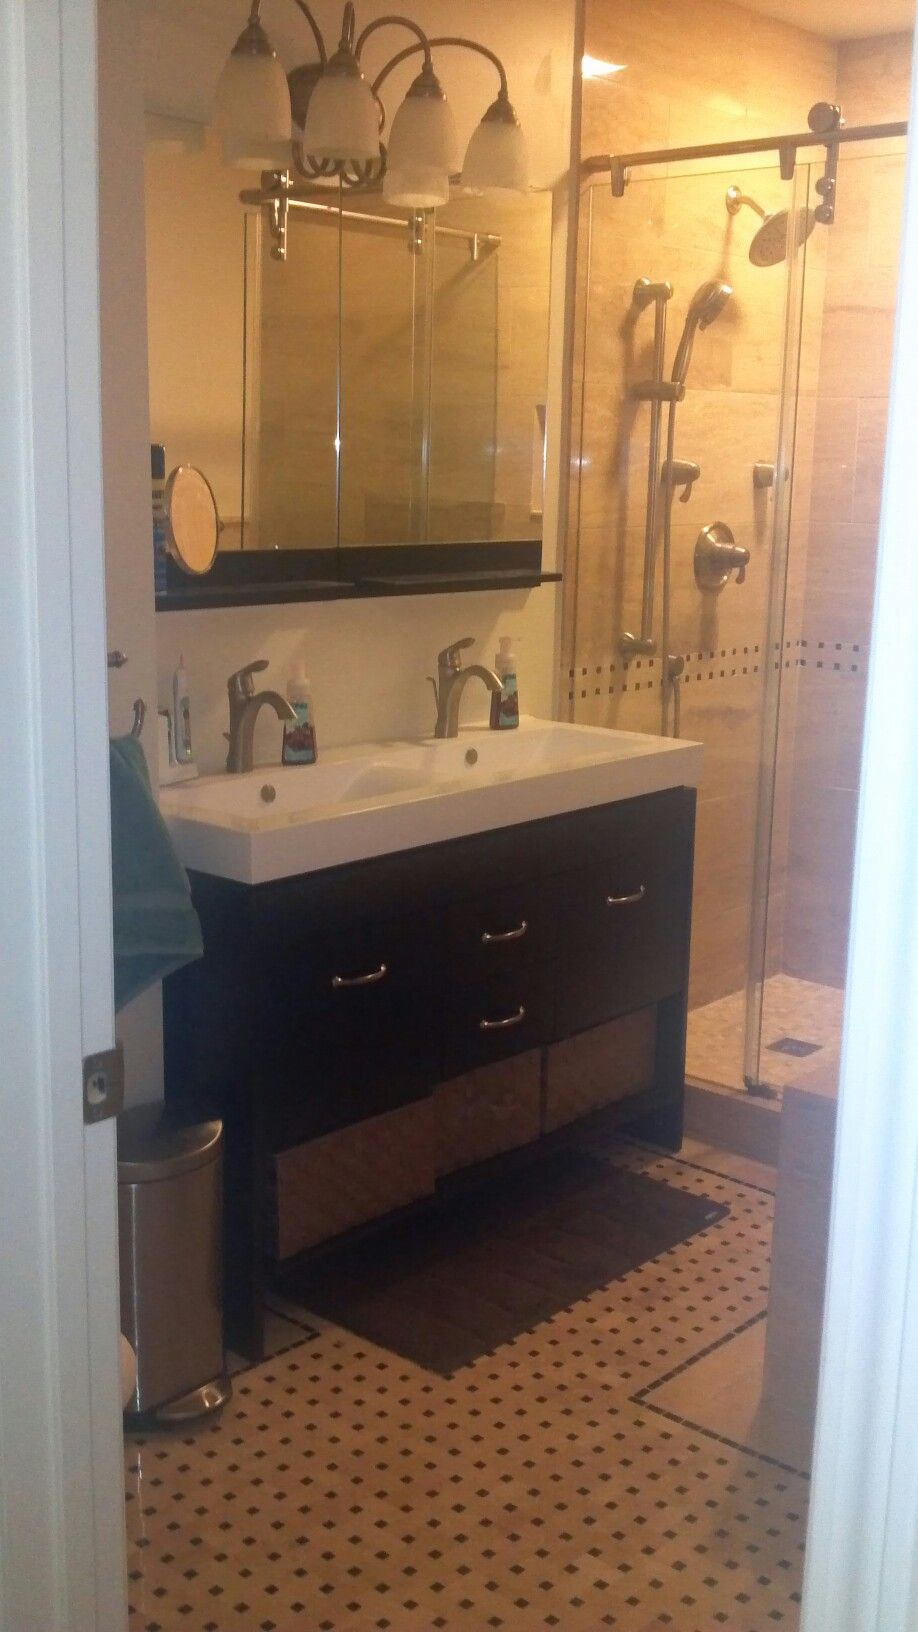 Double Sink Vanity Solution For Small Bathroom  Bathroom Simple Double Sink For Small Bathroom Inspiration Design